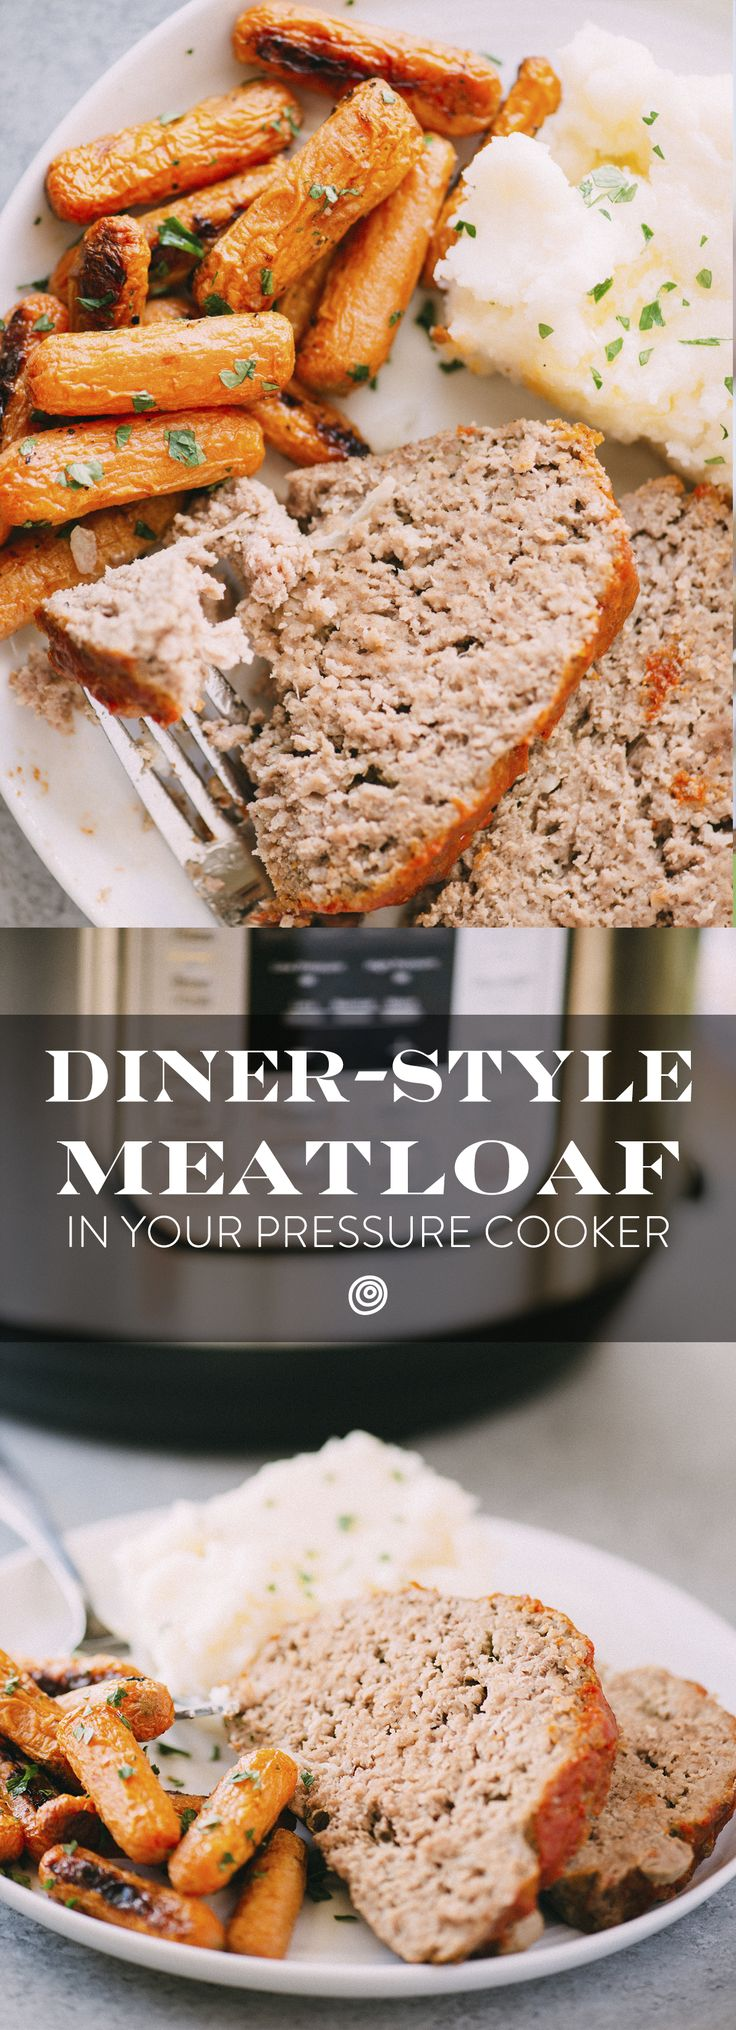 Pressure Cooker Meatloaf Recipe. This is the EASY, QUICK way to get meat loaf on the table for dinner on a weeknight. Make this moist, tender, comfort food classic with ground beef, panko breadcrumbs, milk, onion, eggs, ground pork, and ketchup. Pressure cooking in your instant pot or pressure cooker makes this meal, the king of diner recipes, a breeze!